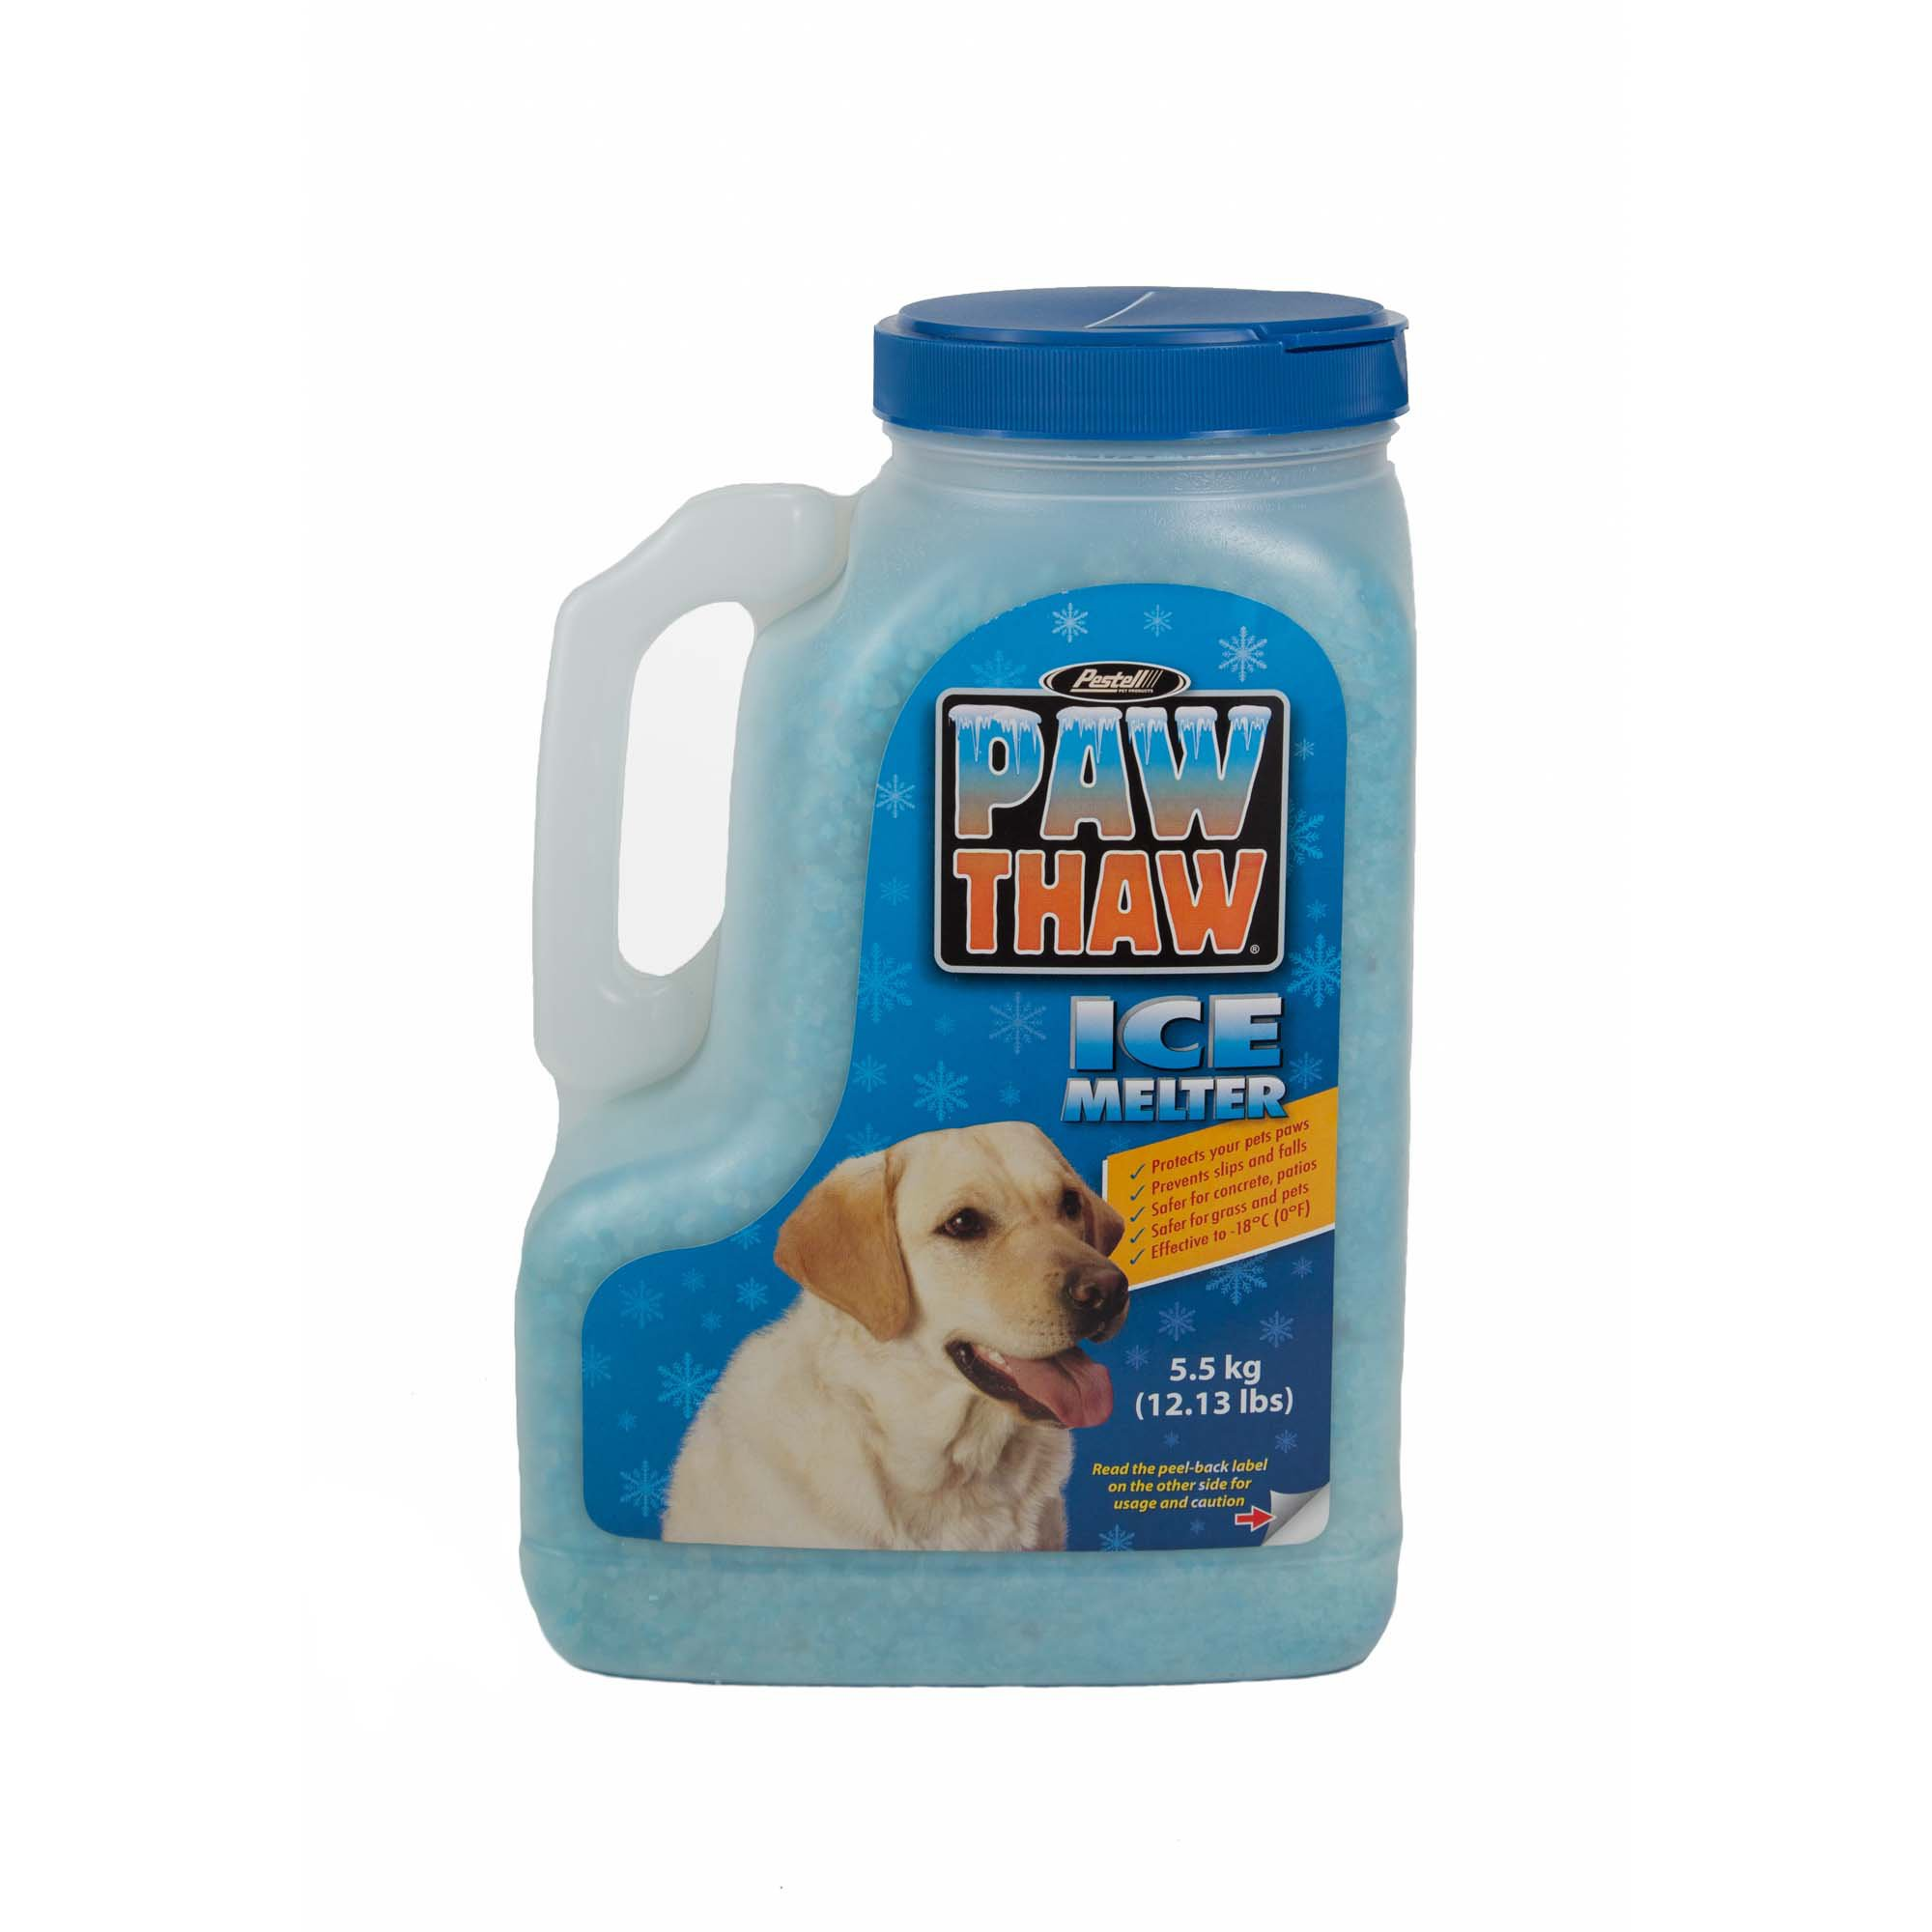 Pestell Paw Thaw Pet Friendly Ice Melter Jug